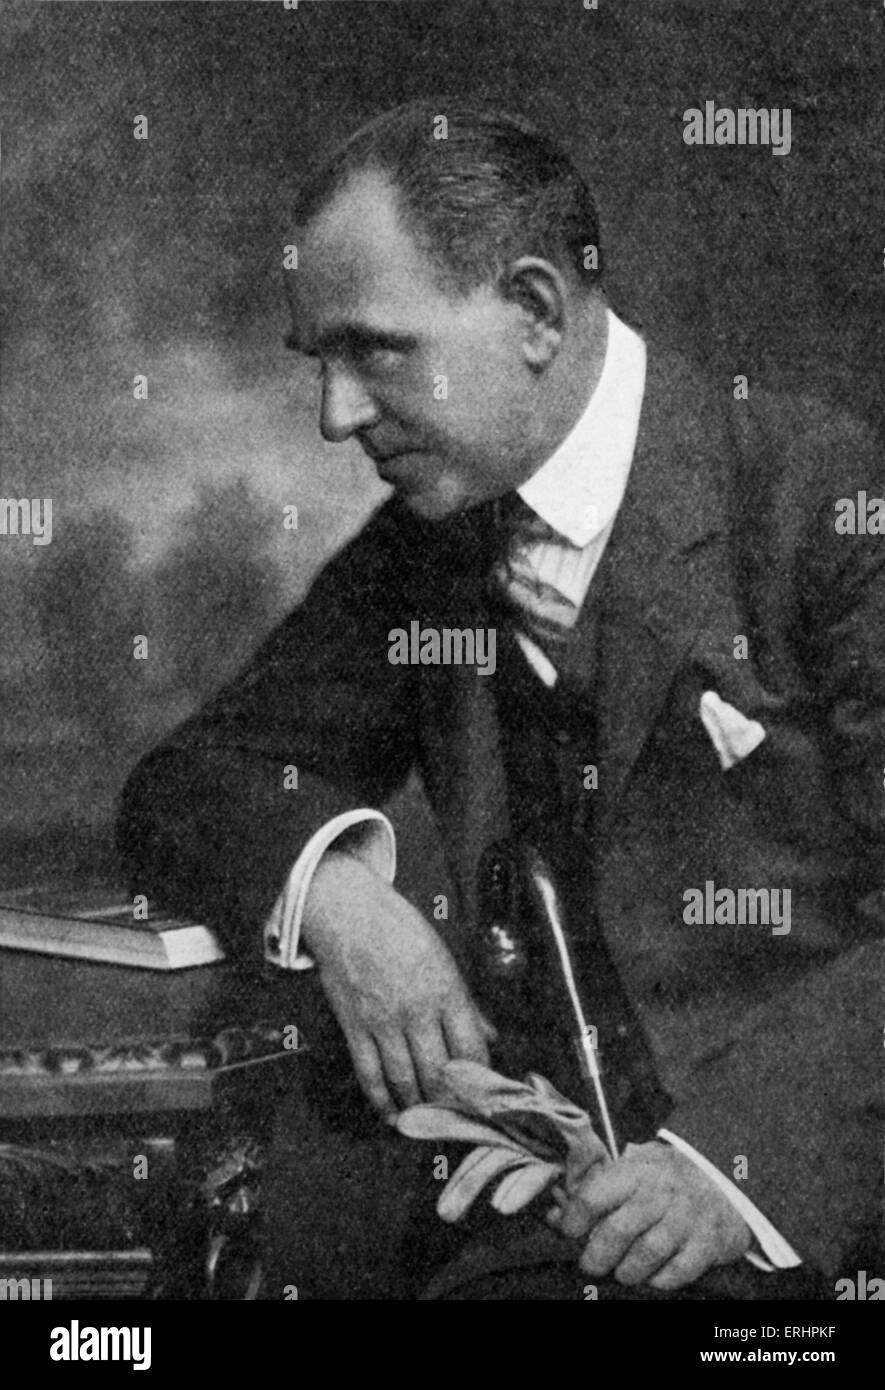 Edward Phillips Oppenheim - English novelist, 22 October 1866 - 3 February 1946. - Stock Image